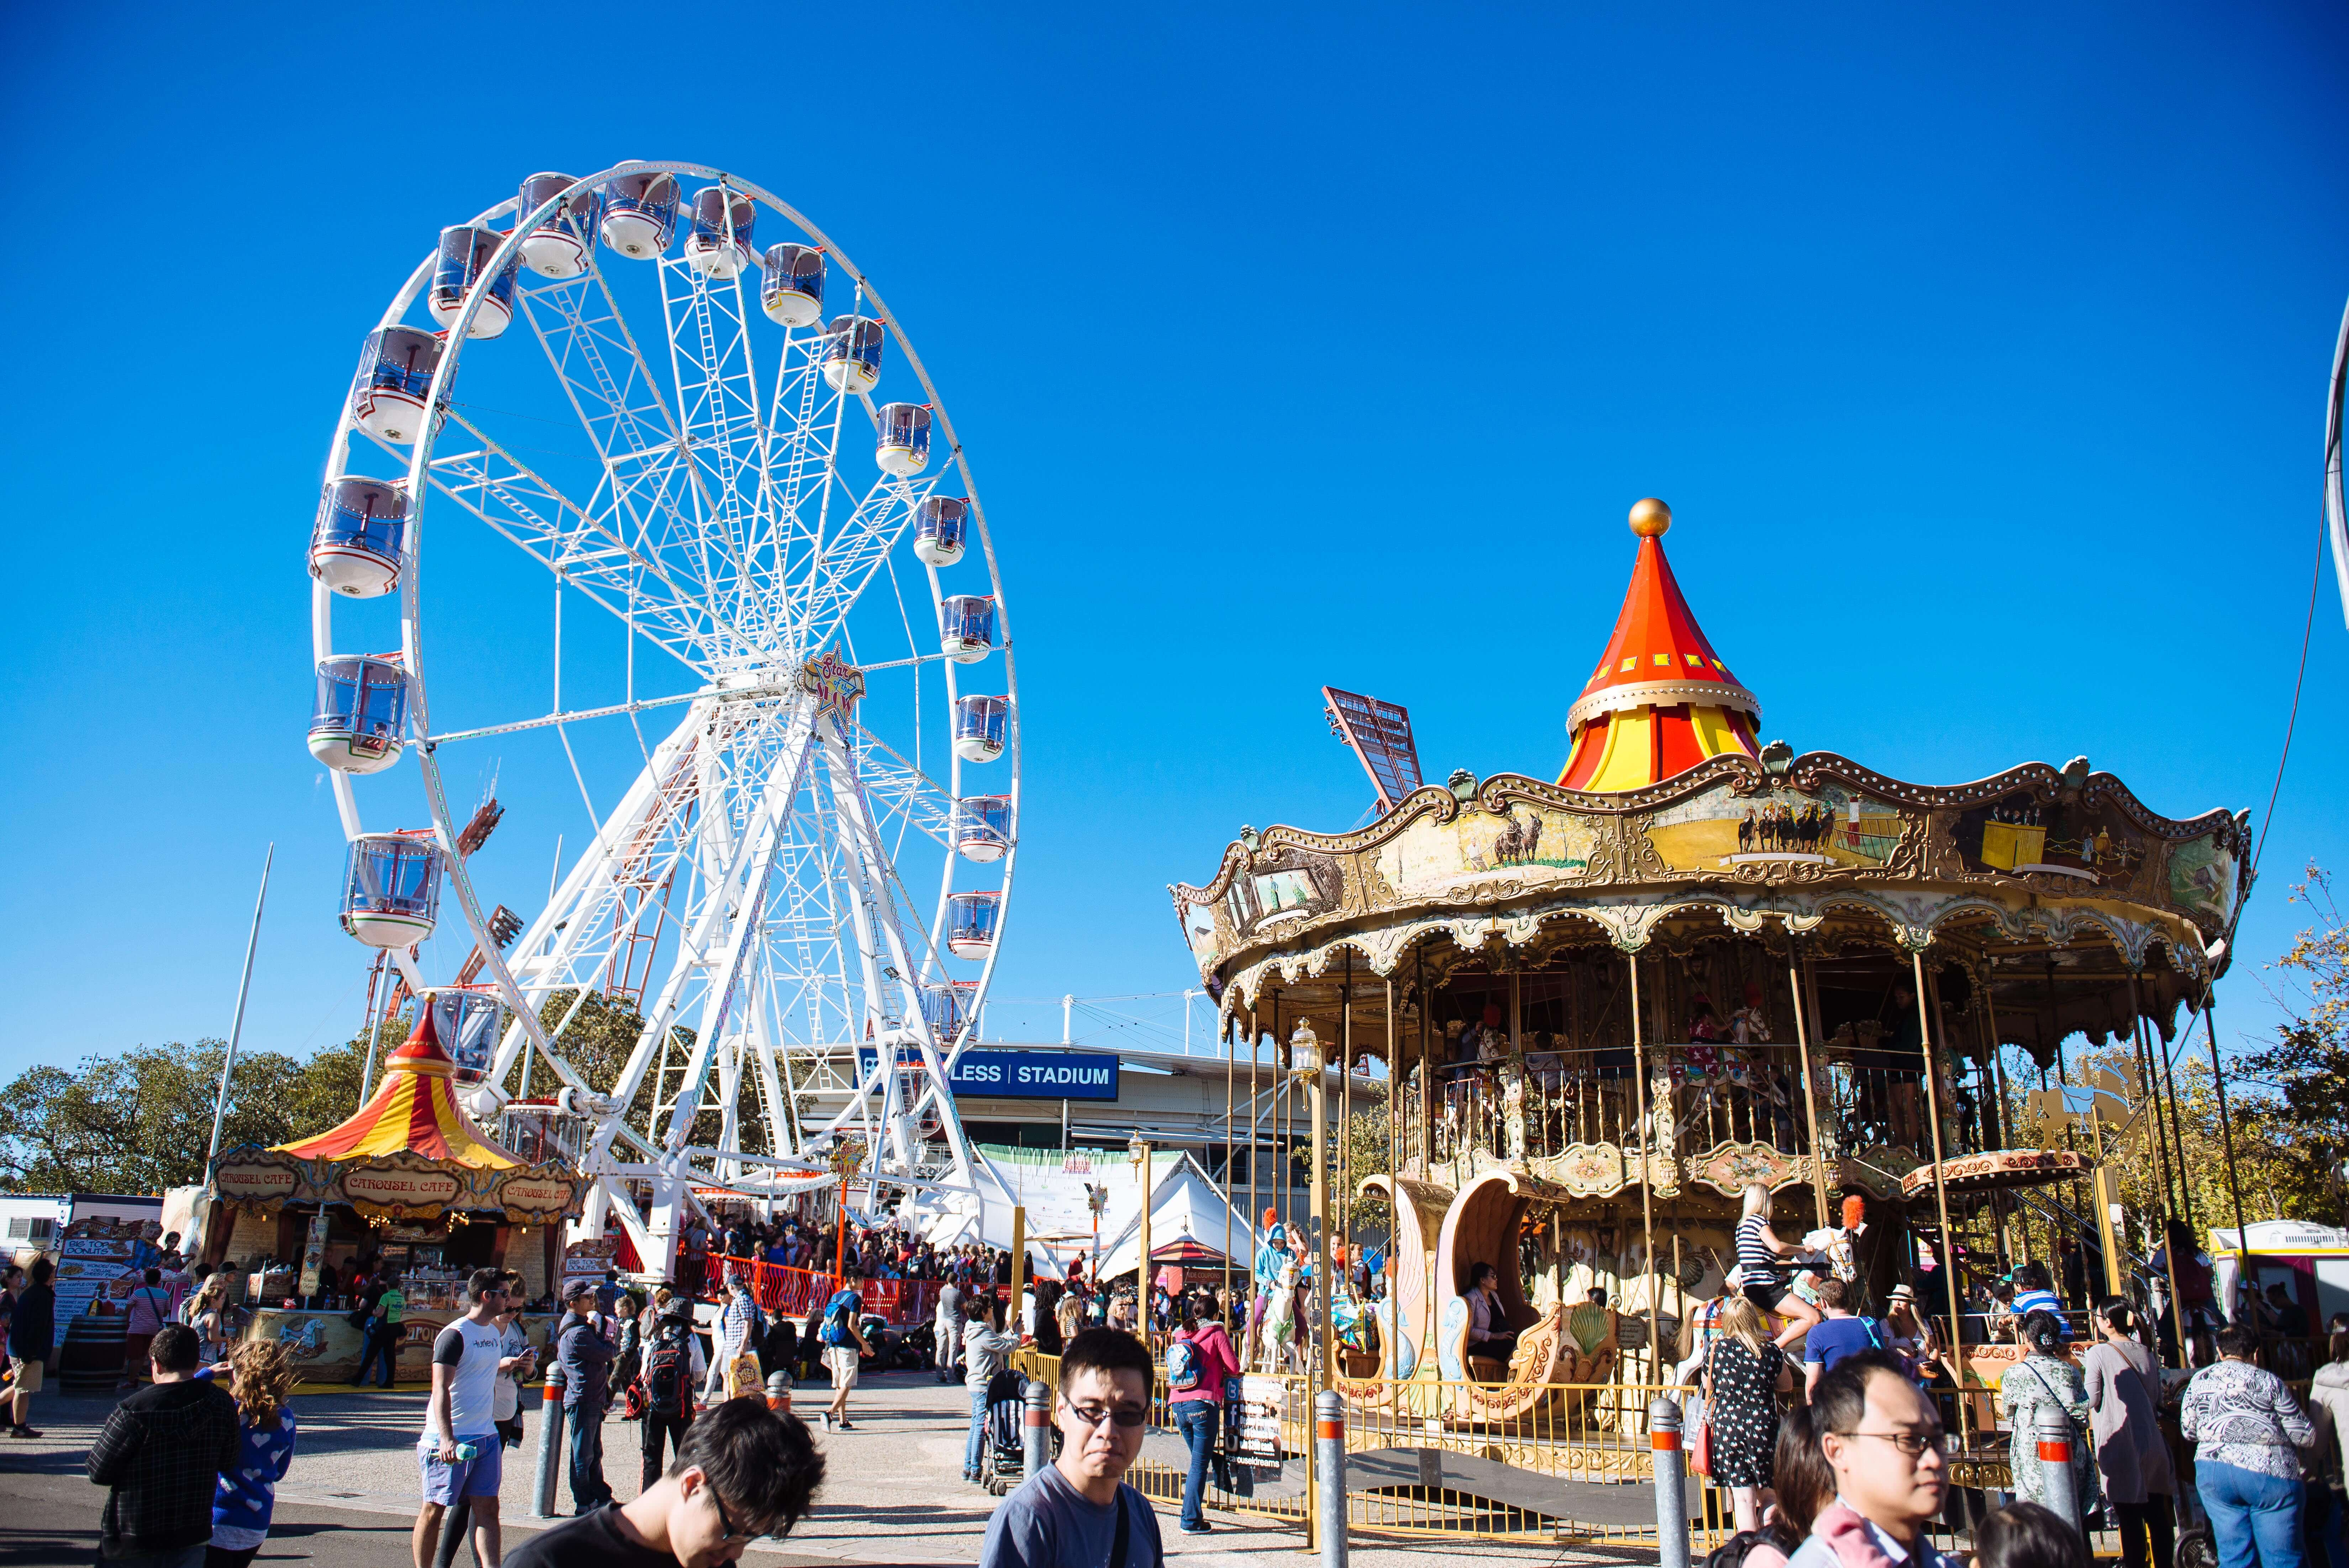 paulmcmillan-event-SRES-150407-016 The Royal Easter Show